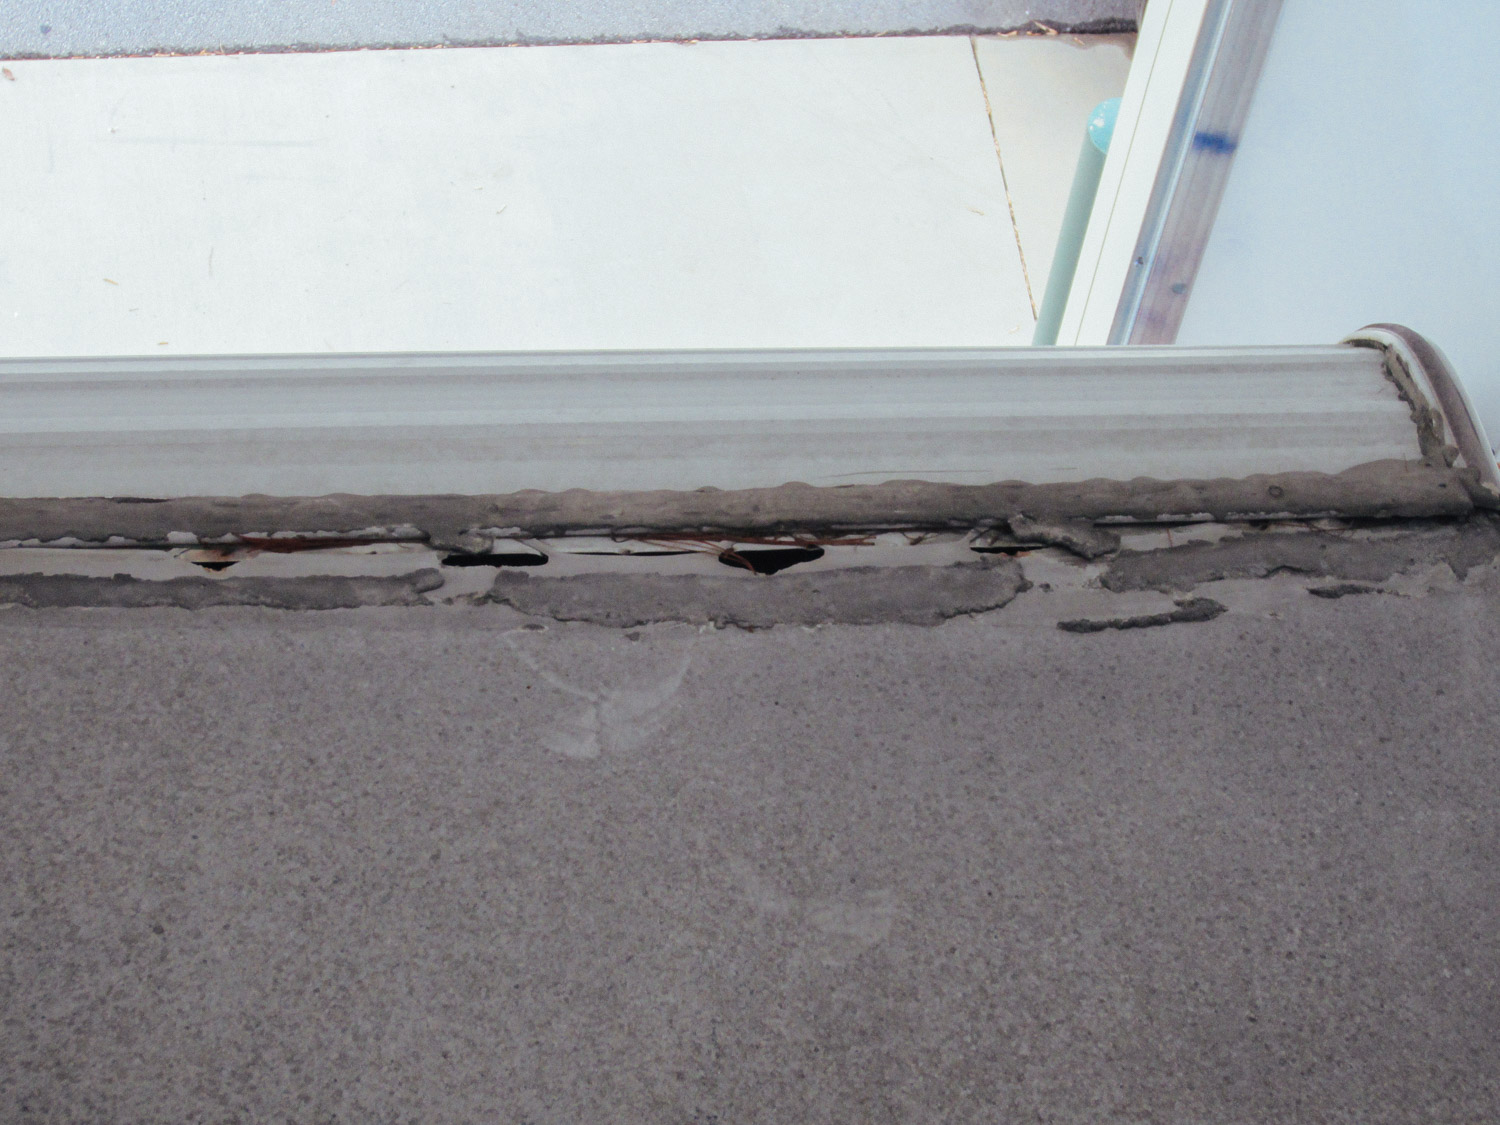 No wonder the roof was leaking! The seams were so old they were cracked.